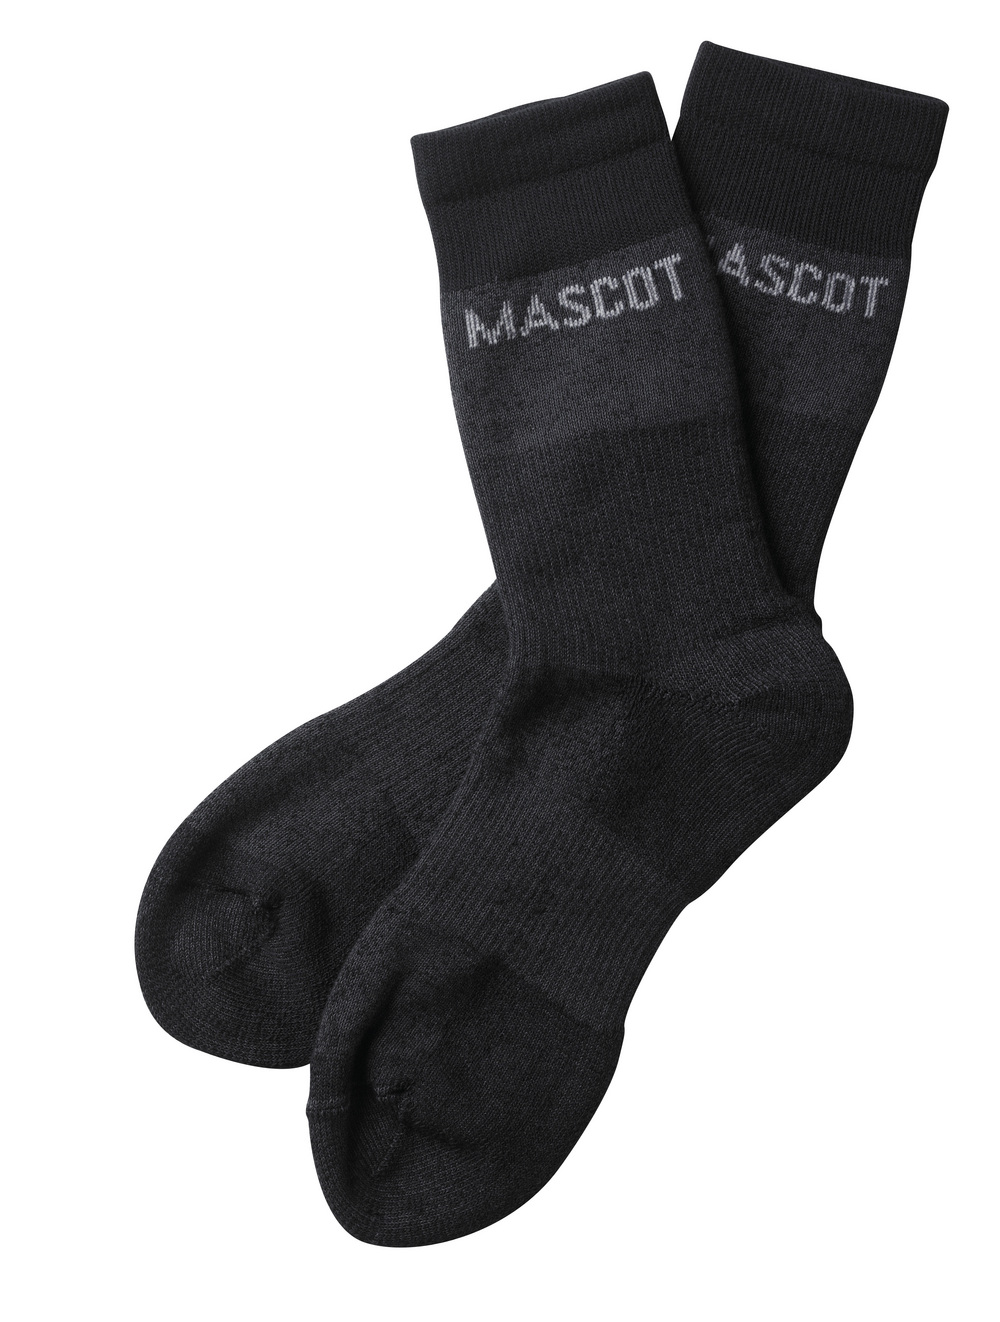 50406-877-A42 Socks - dark anthracite-flecked